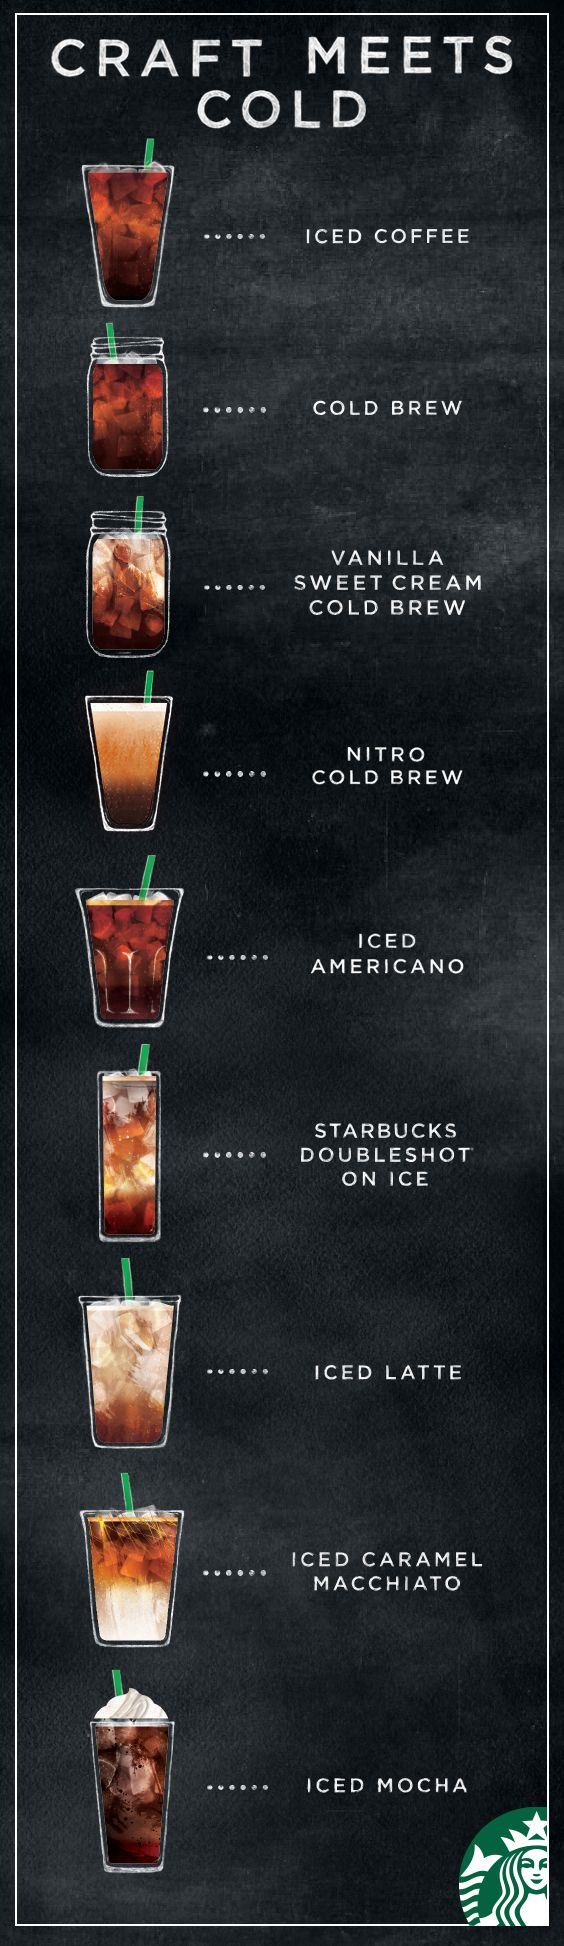 Nine different ways to enjoy handcrafted, cold coffee perfection. Explore Starbucks iced coffee and iced espresso lineup and learn what makes each drink unique.